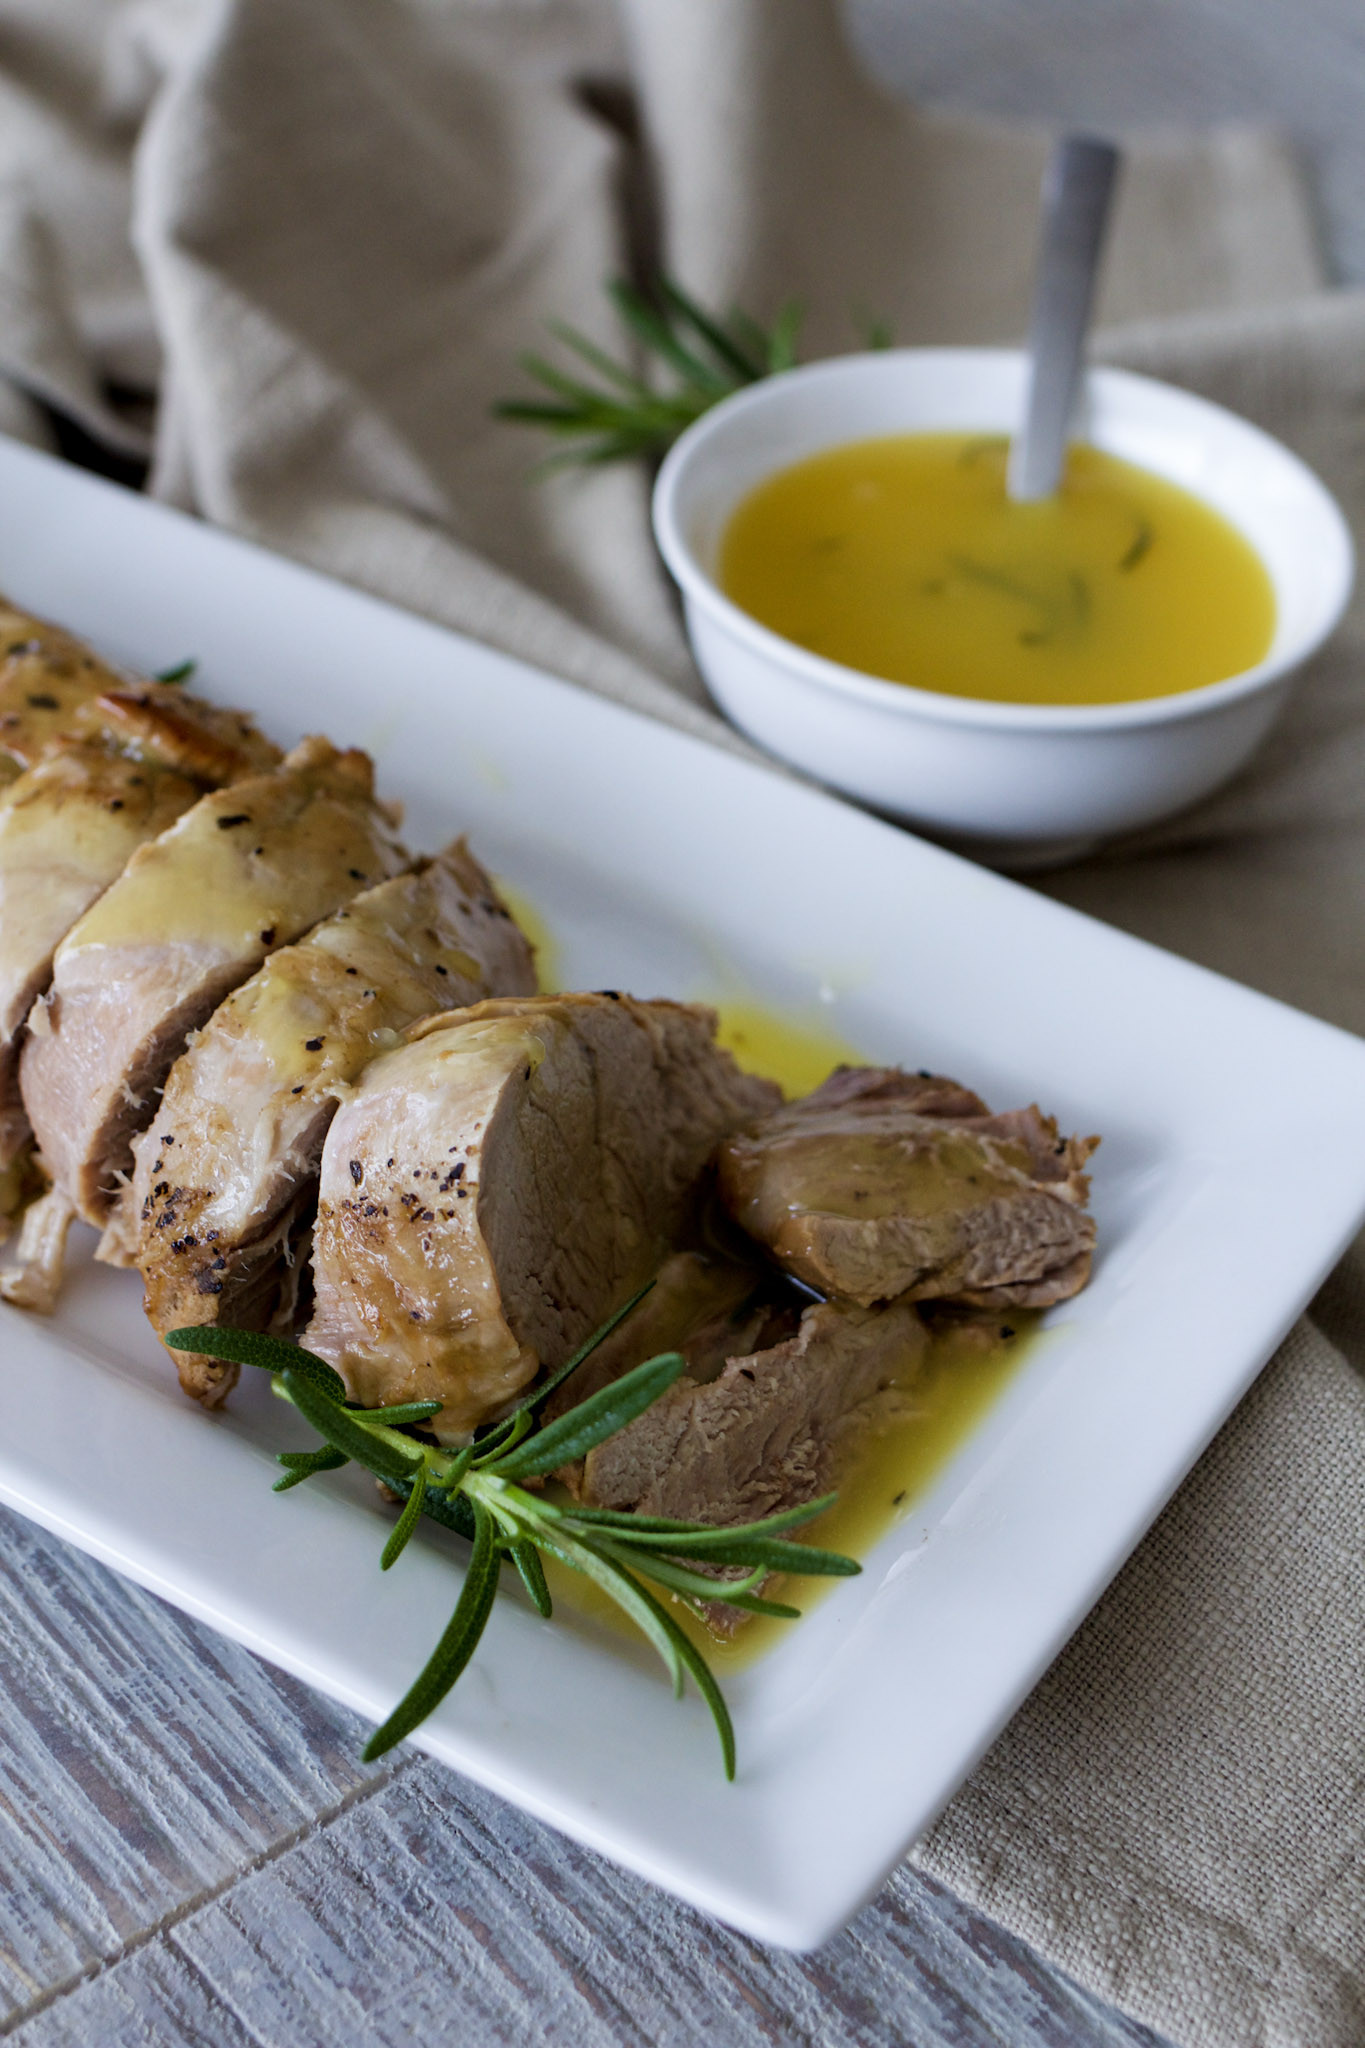 Instapot Pork Tenderloin  Instant Pot Pork Tenderloin with Orange Rosemary Glaze A